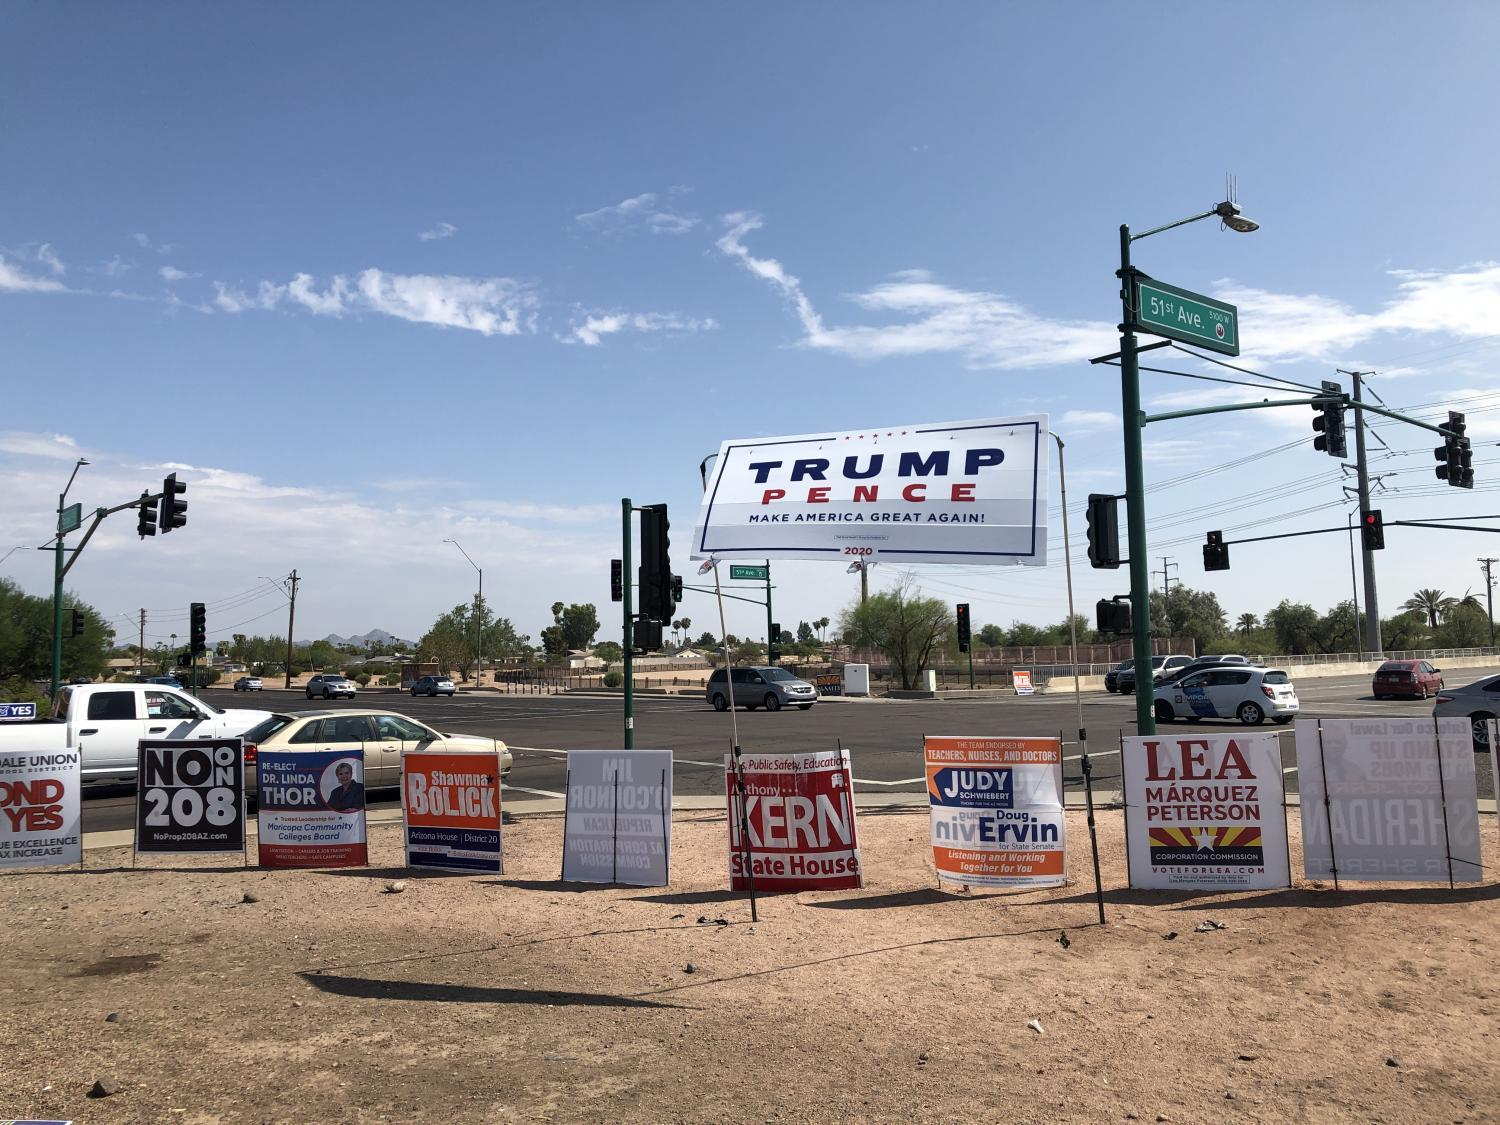 A large Trump/Pence sign mounted above other signs in north Phoenix.